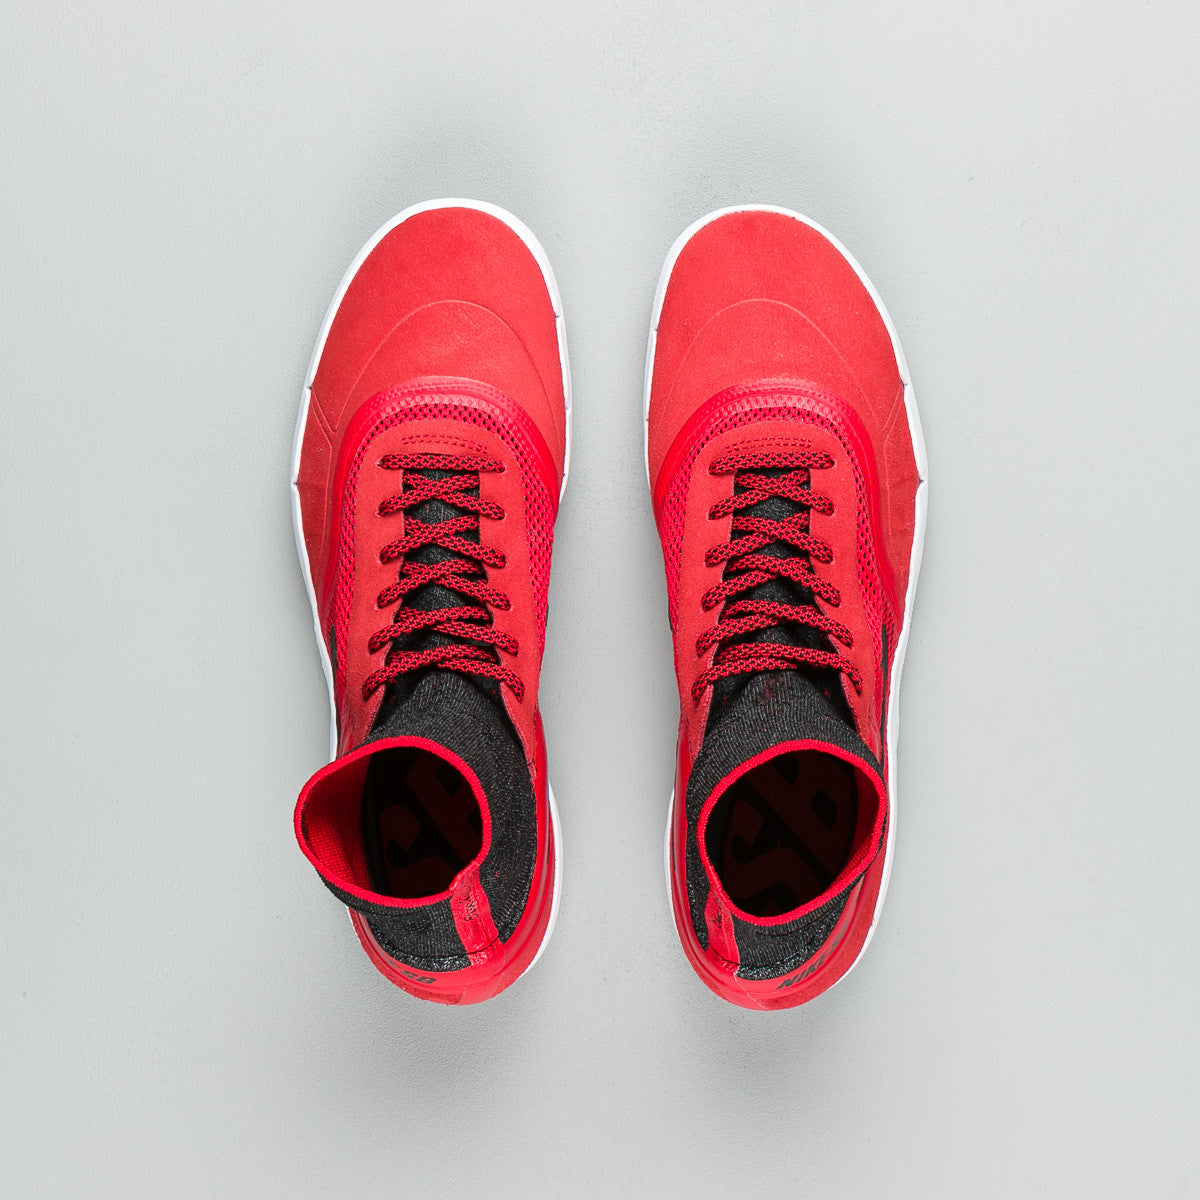 Nike SB Koston 3 Hyperfeel Shoes - University Red / Black - White